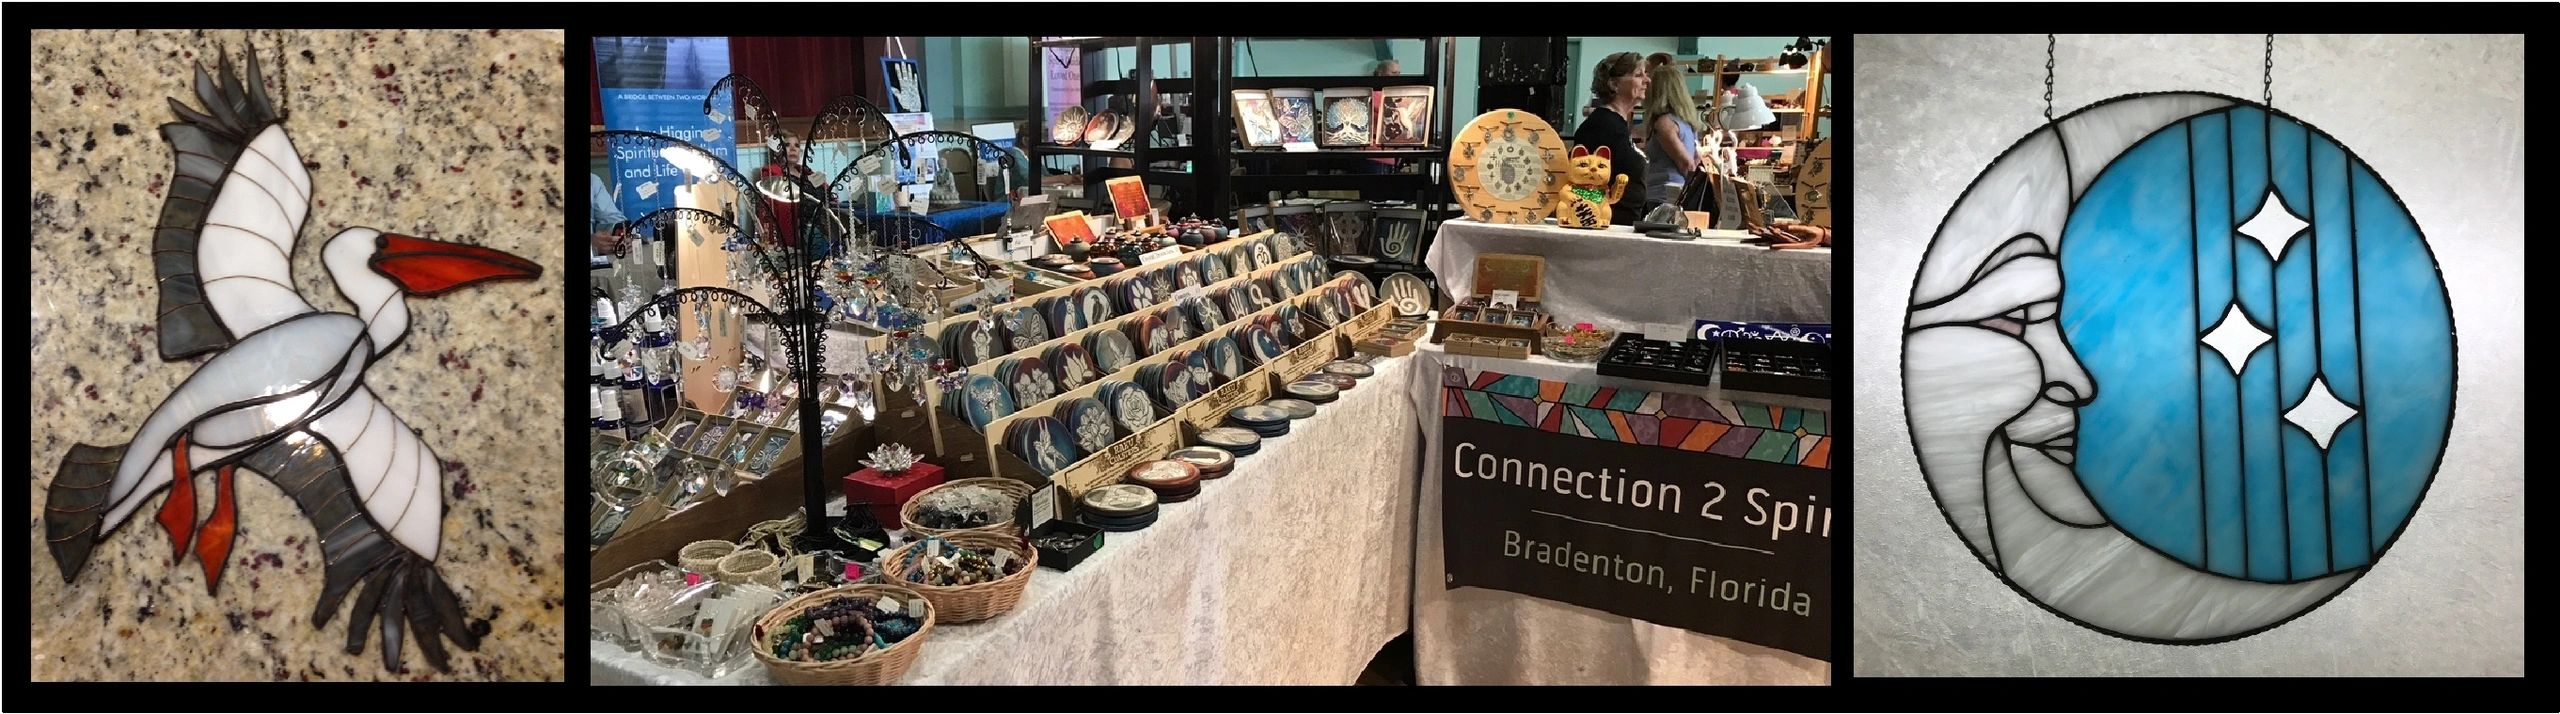 Connection 2 Spirit - Holistic Events, Wellness Expos | Connection 2